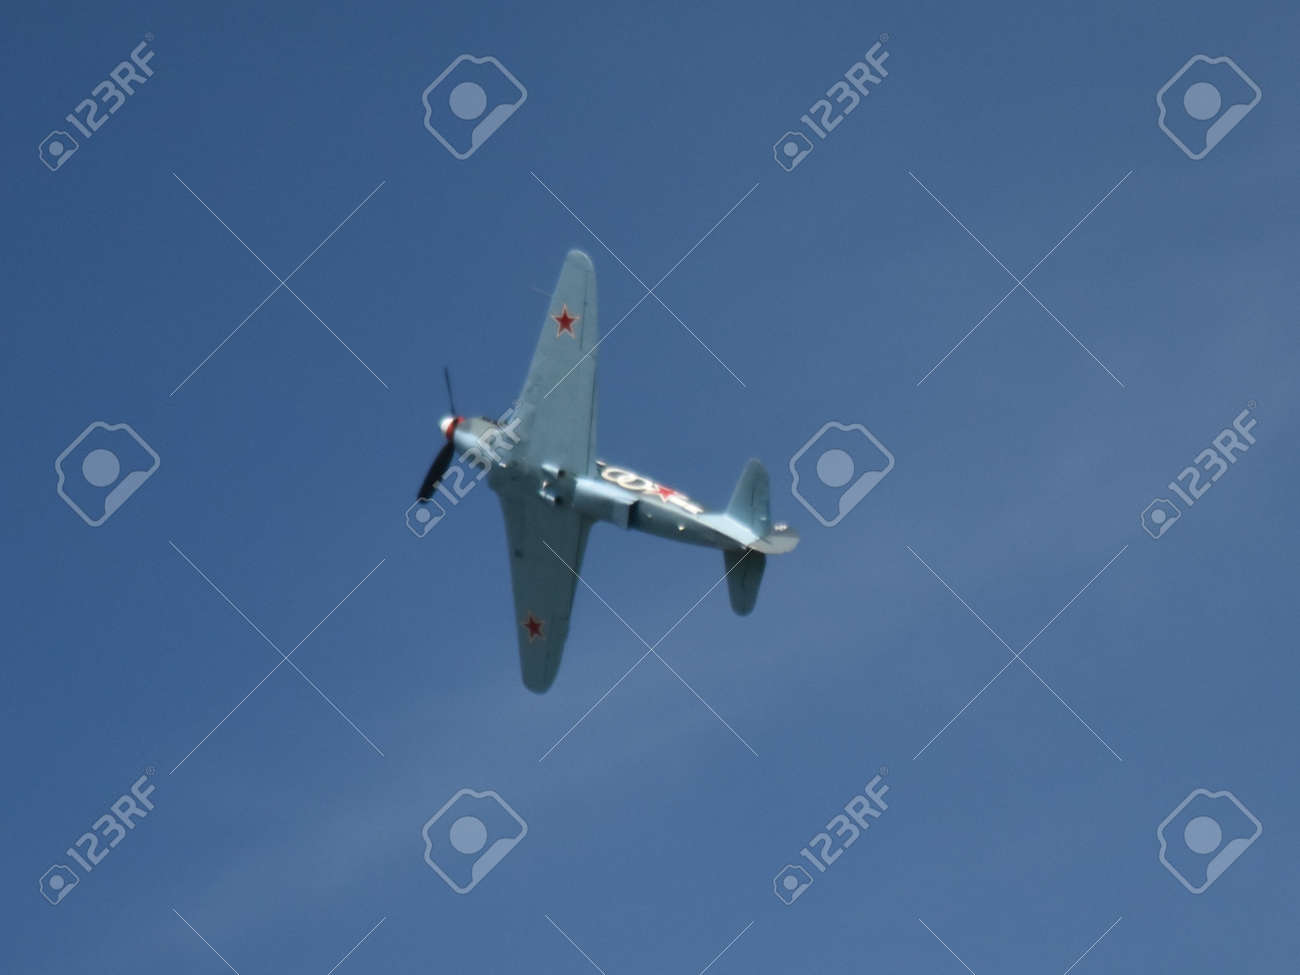 Yakovlev Ya-3 in flight. Owned by Will Greenwood, flying in the Normandie Niemen colours of Louis Delfino Stock Photo - 83511644